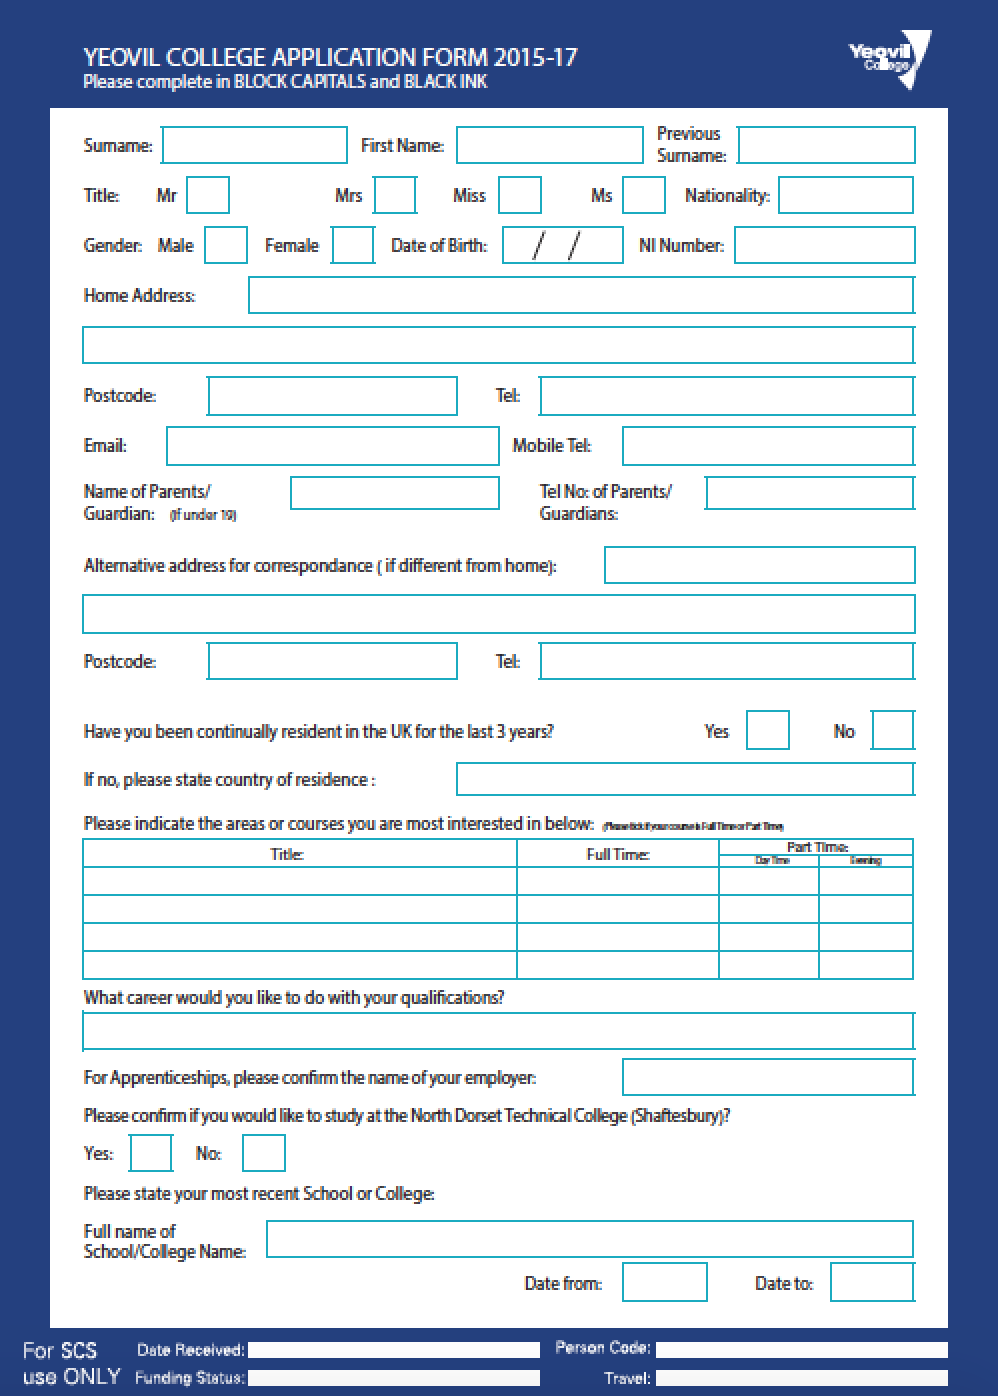 Yeovil College | Application Form